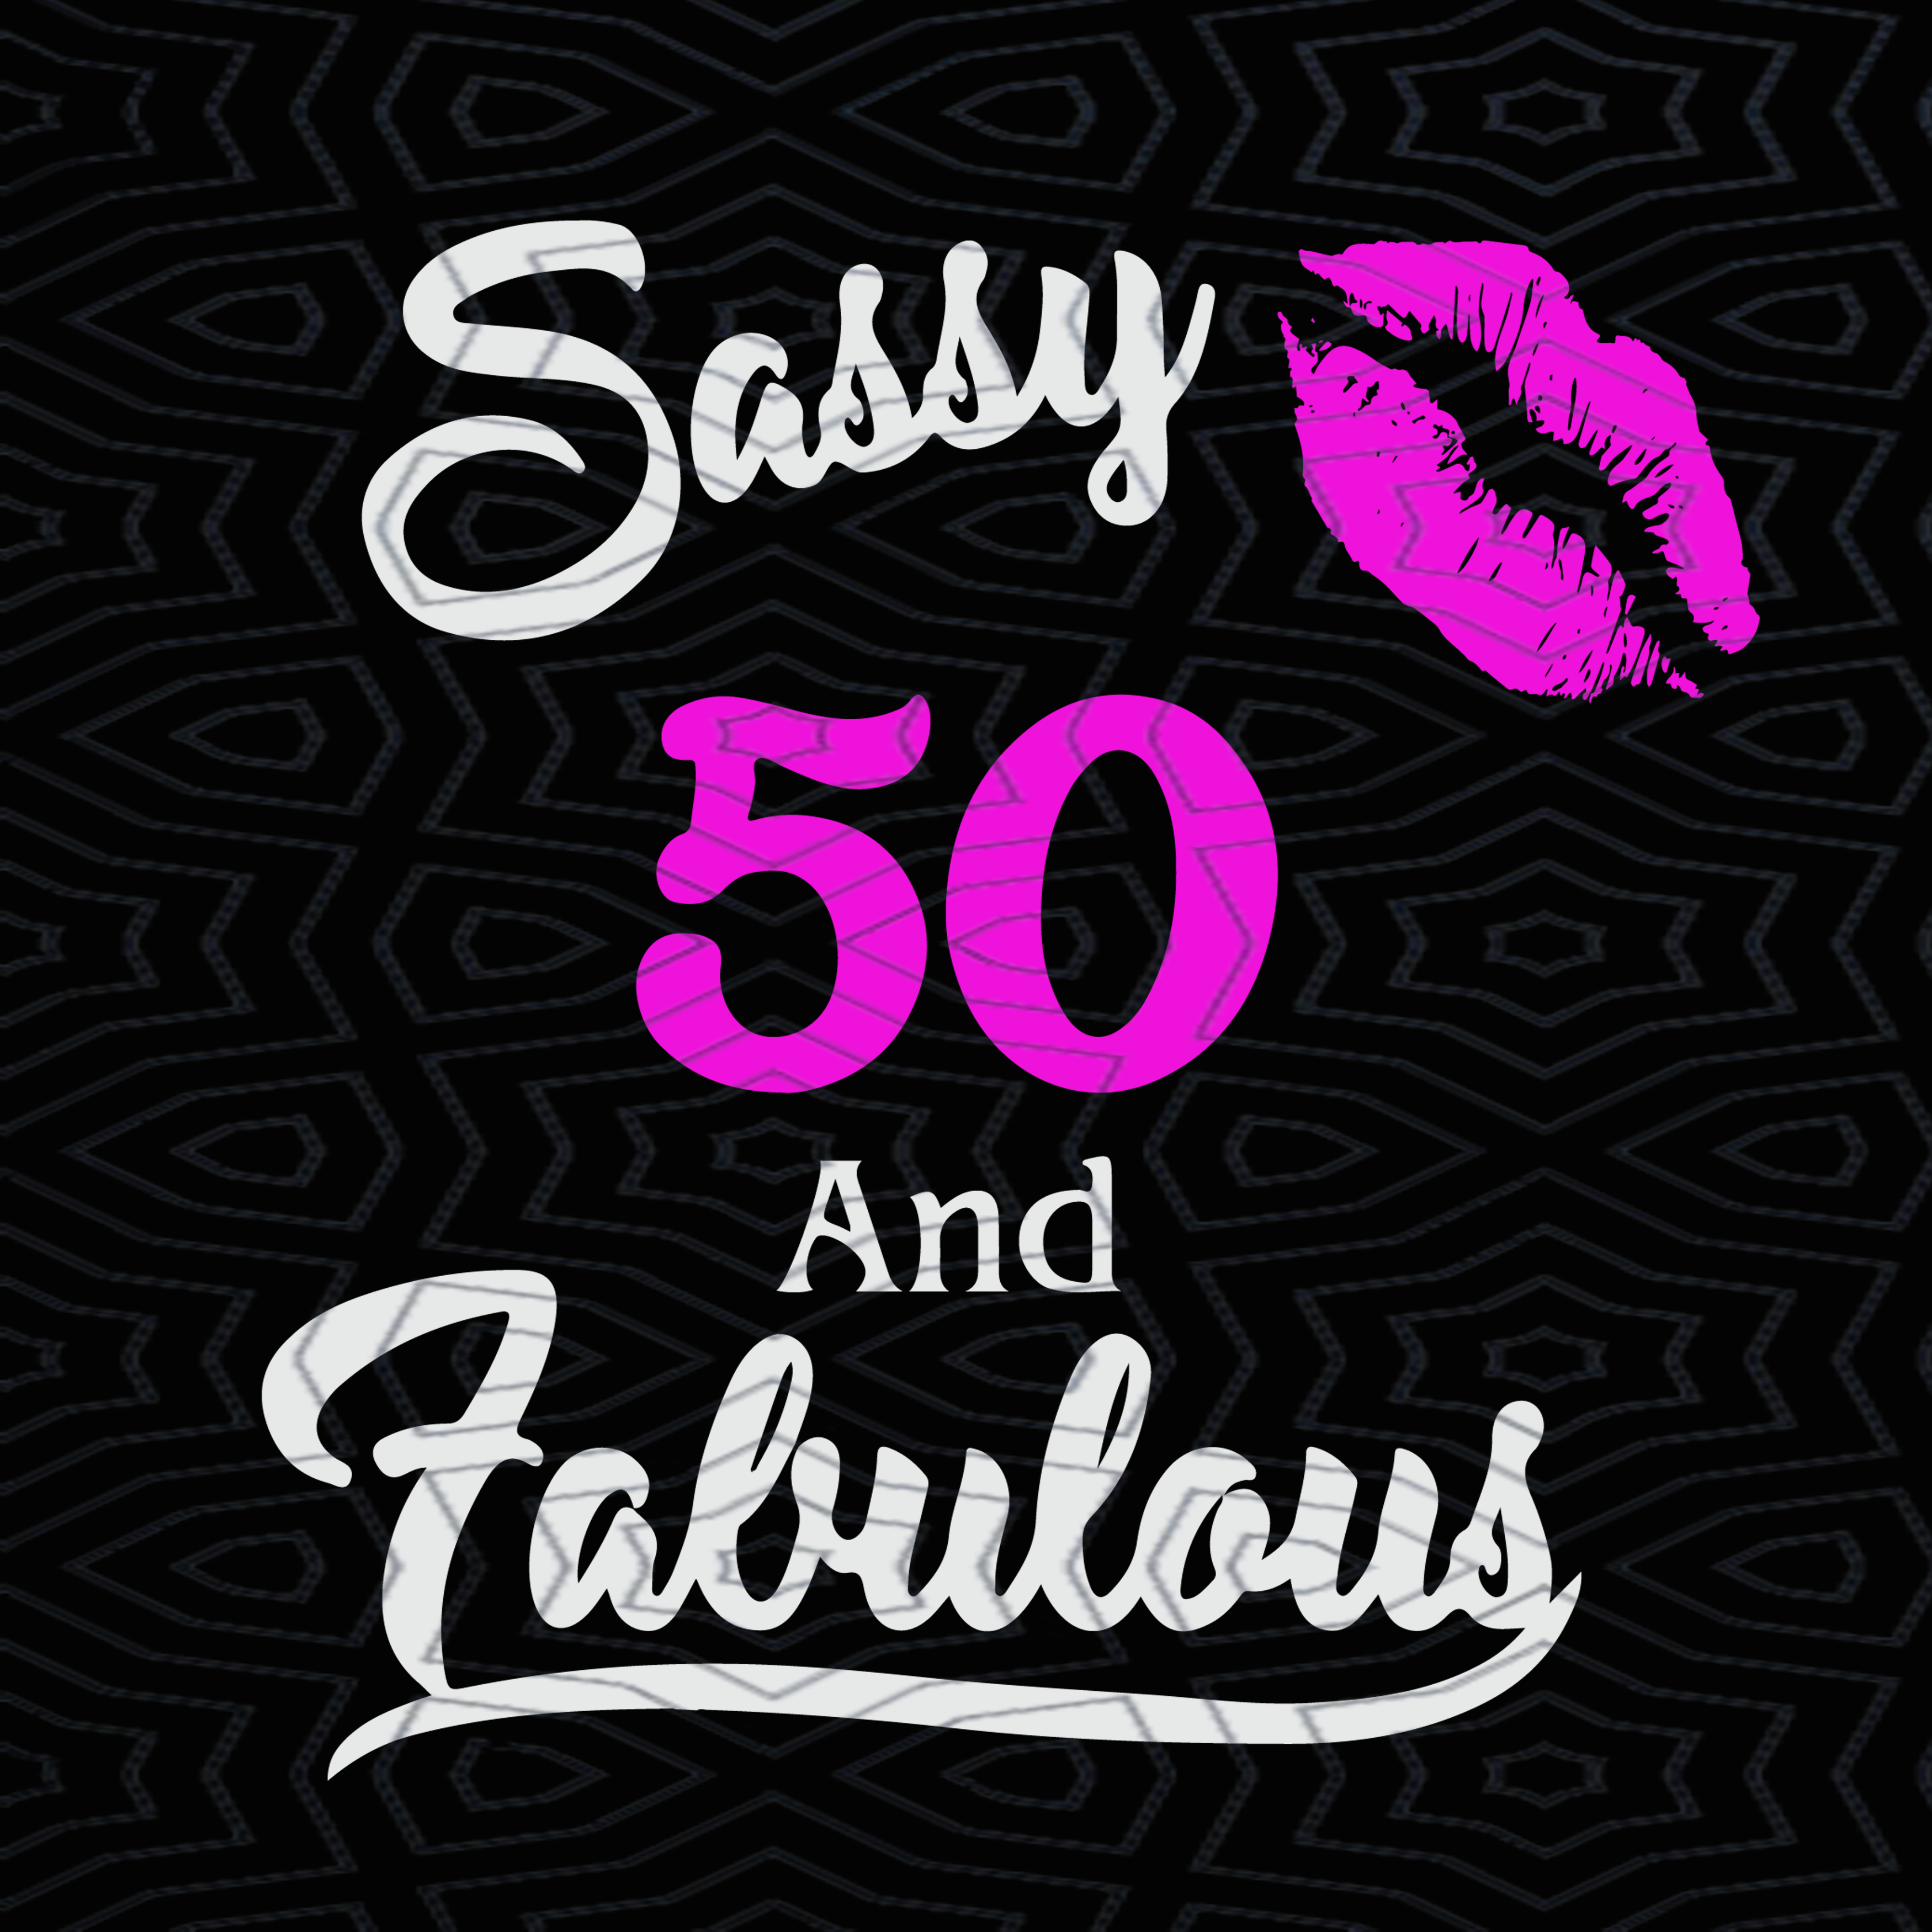 Sassy Fabulous Classy 50, 50th Birthday, 50th By